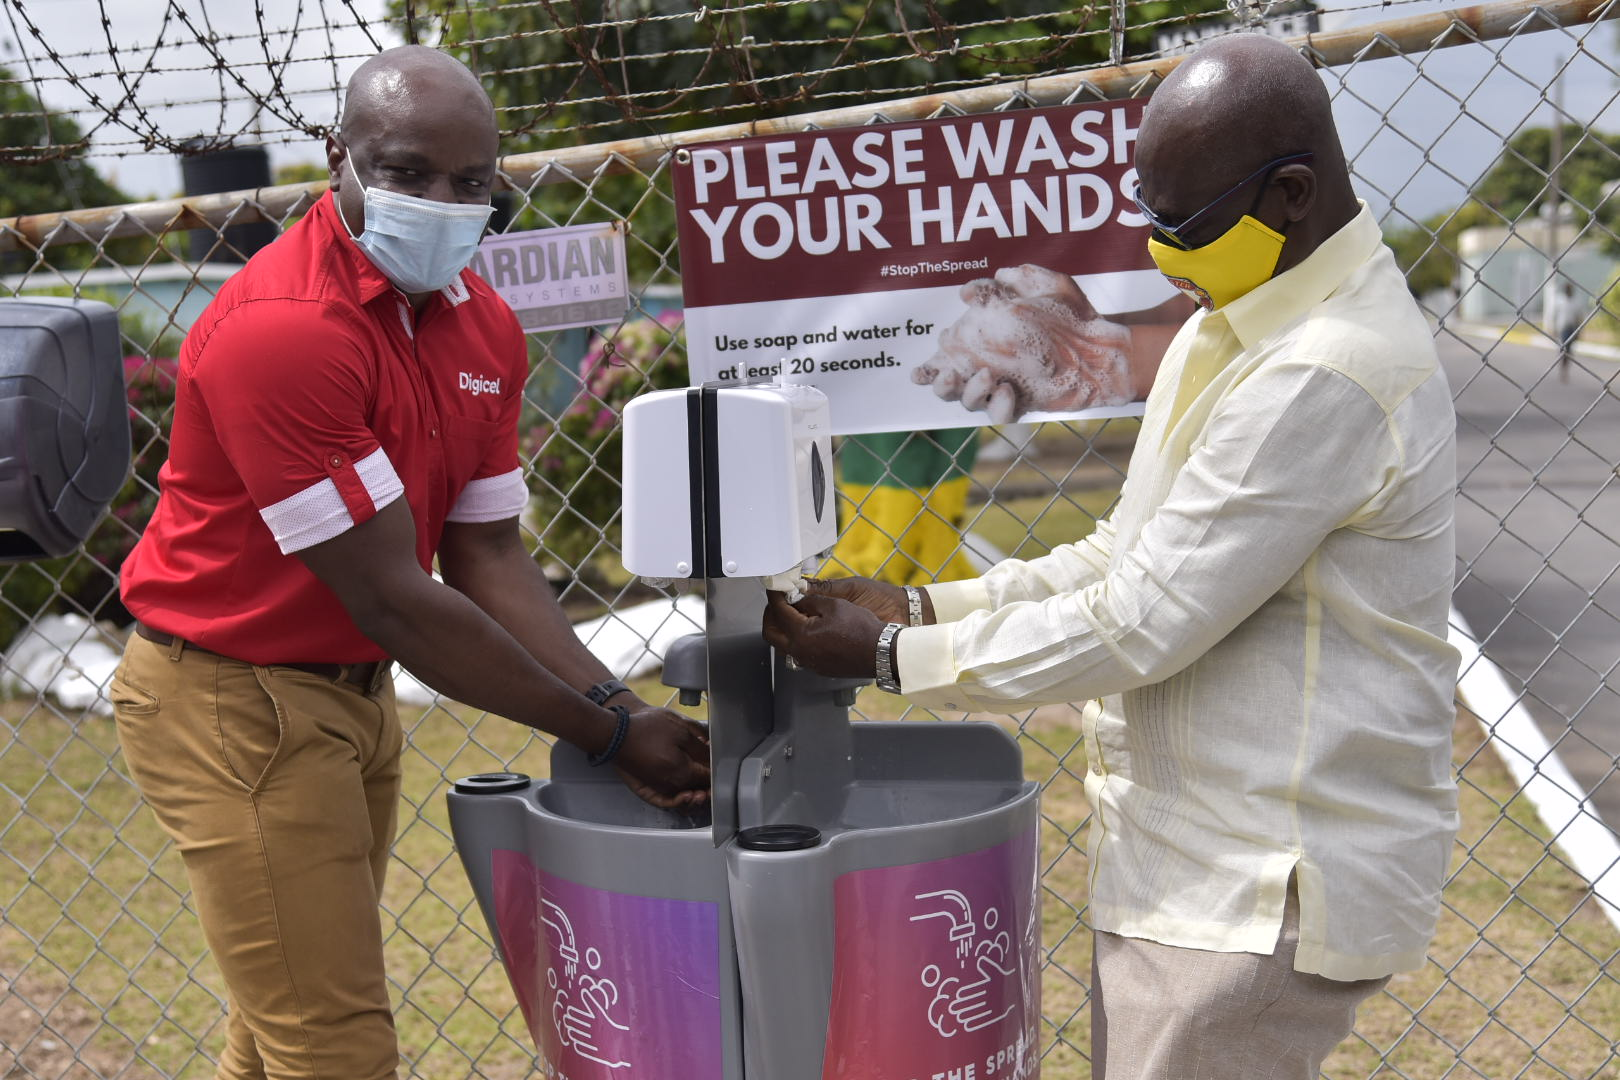 Public Hand-Washing Stations to Be Installed Across Jamaica As Government And Digicel Partner To Fight Covid-19